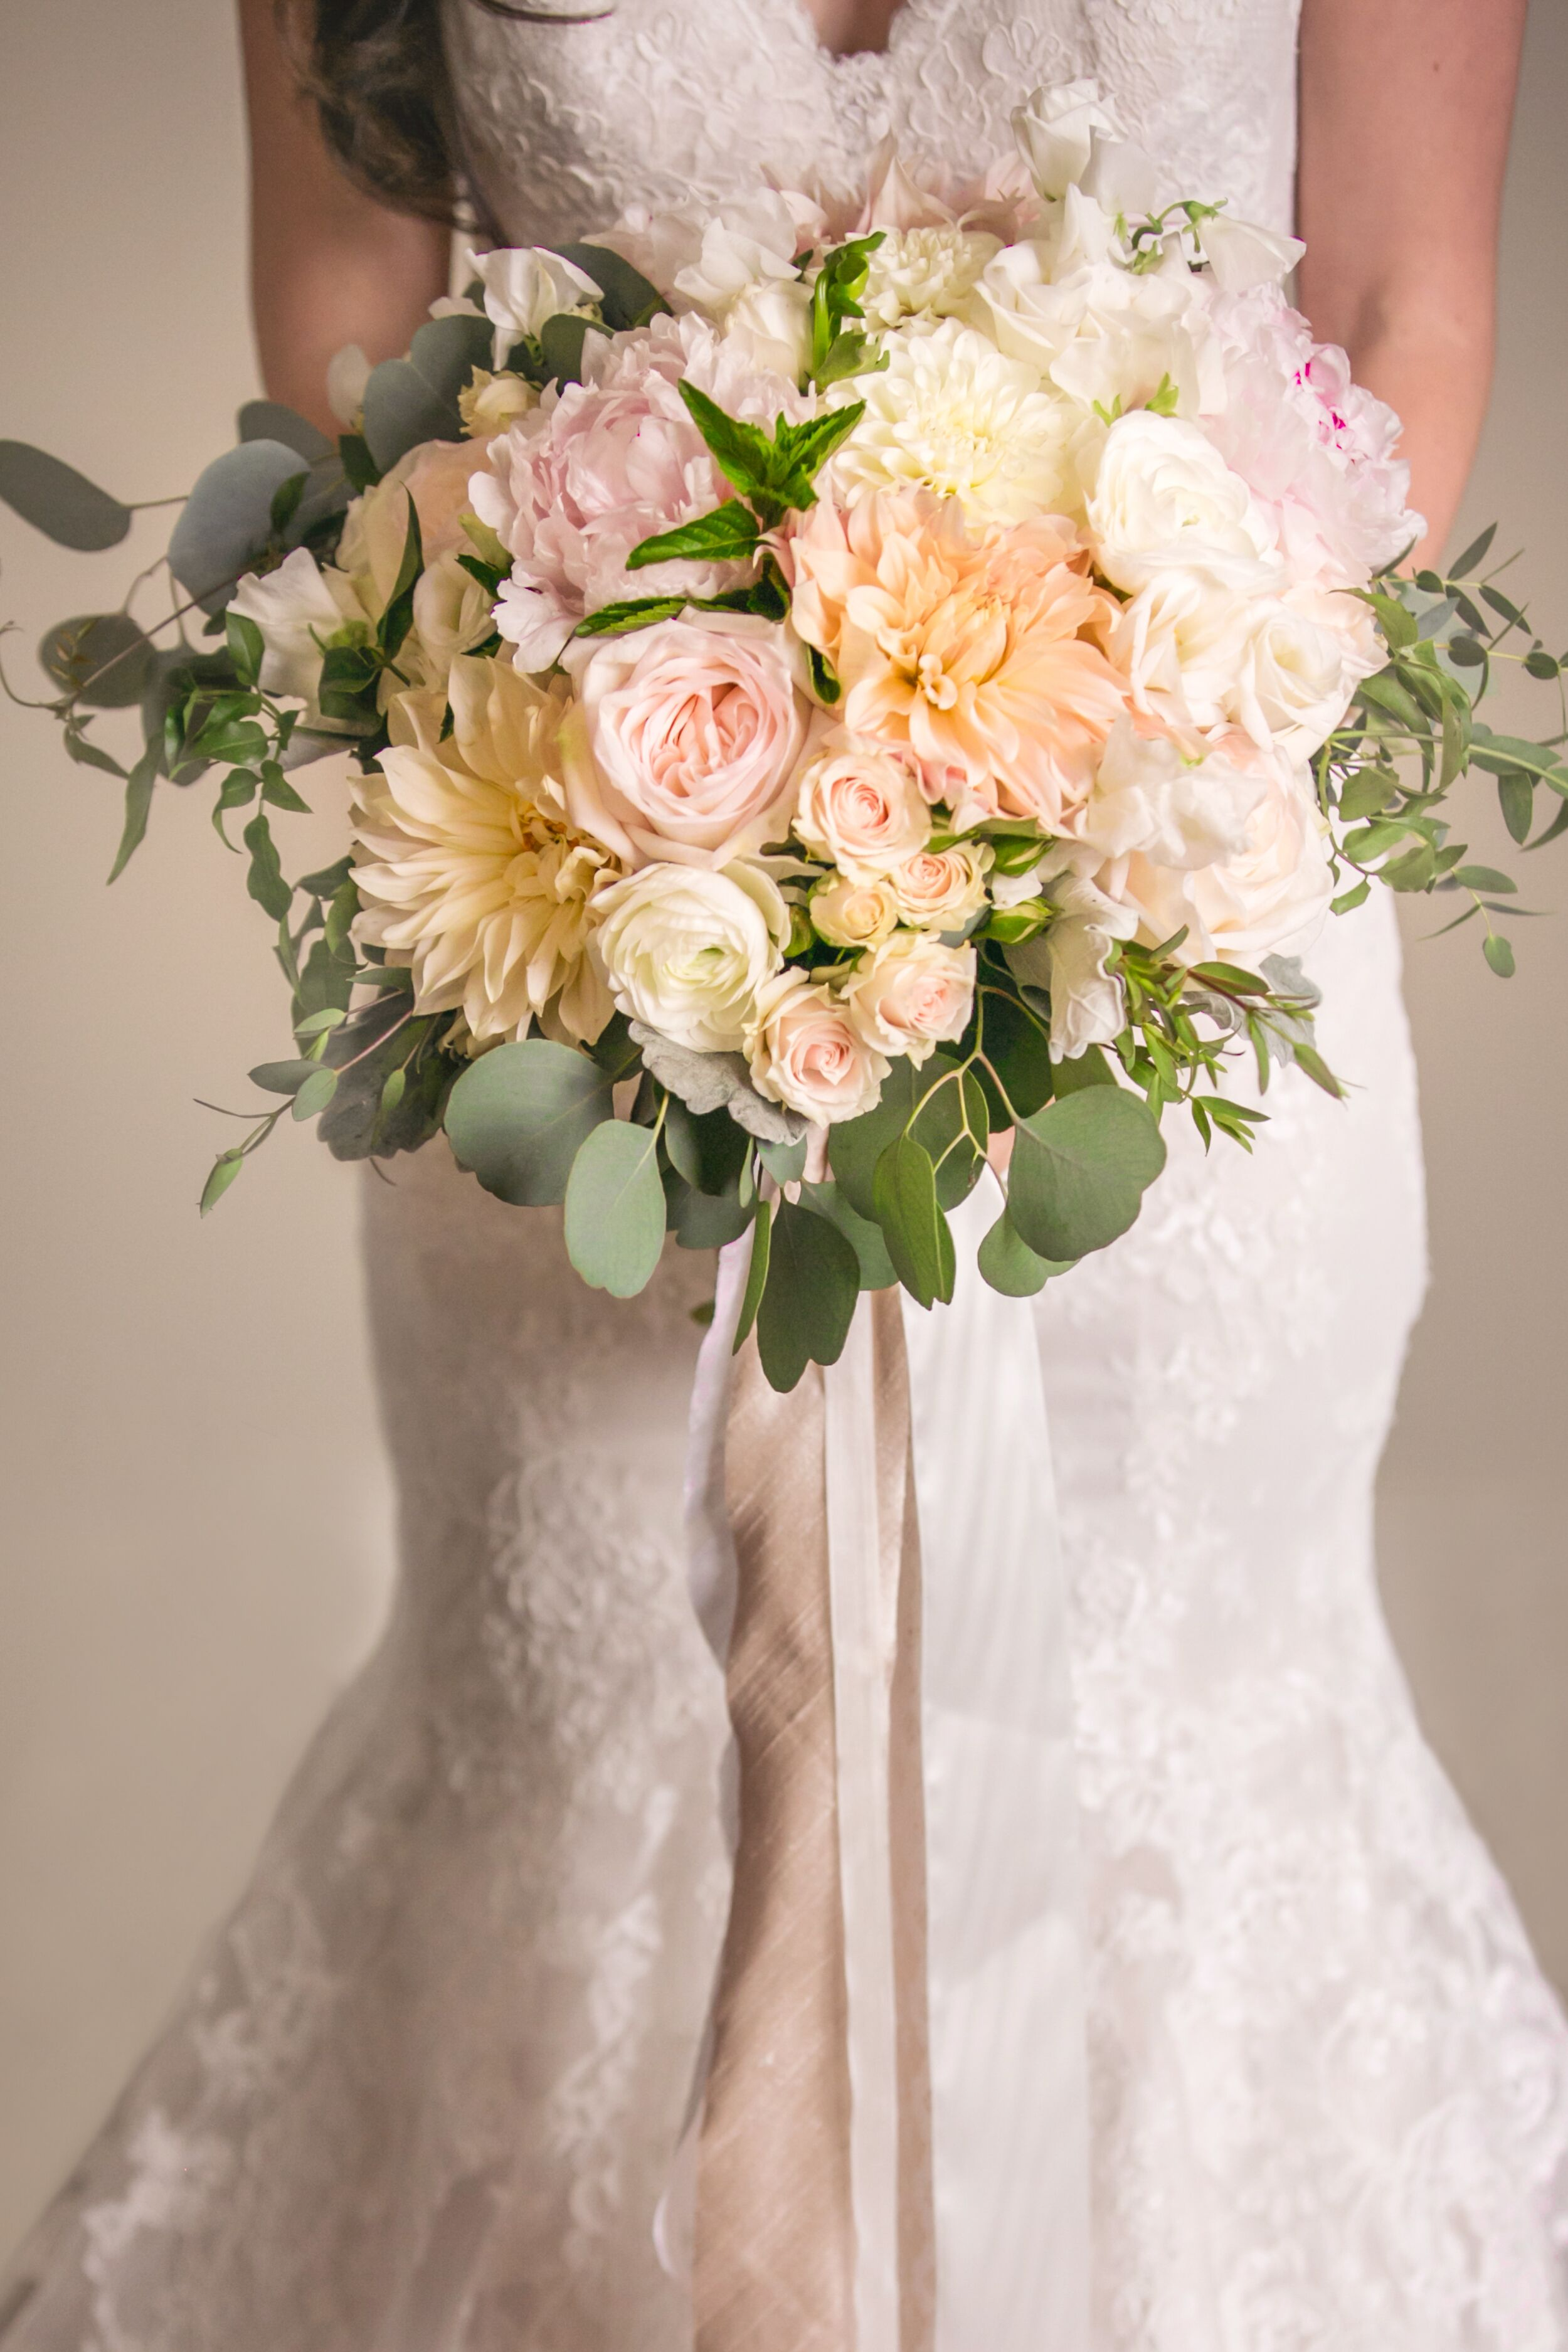 Blush-and-Ivory Bridal Bouquet With Cascading Ribbons